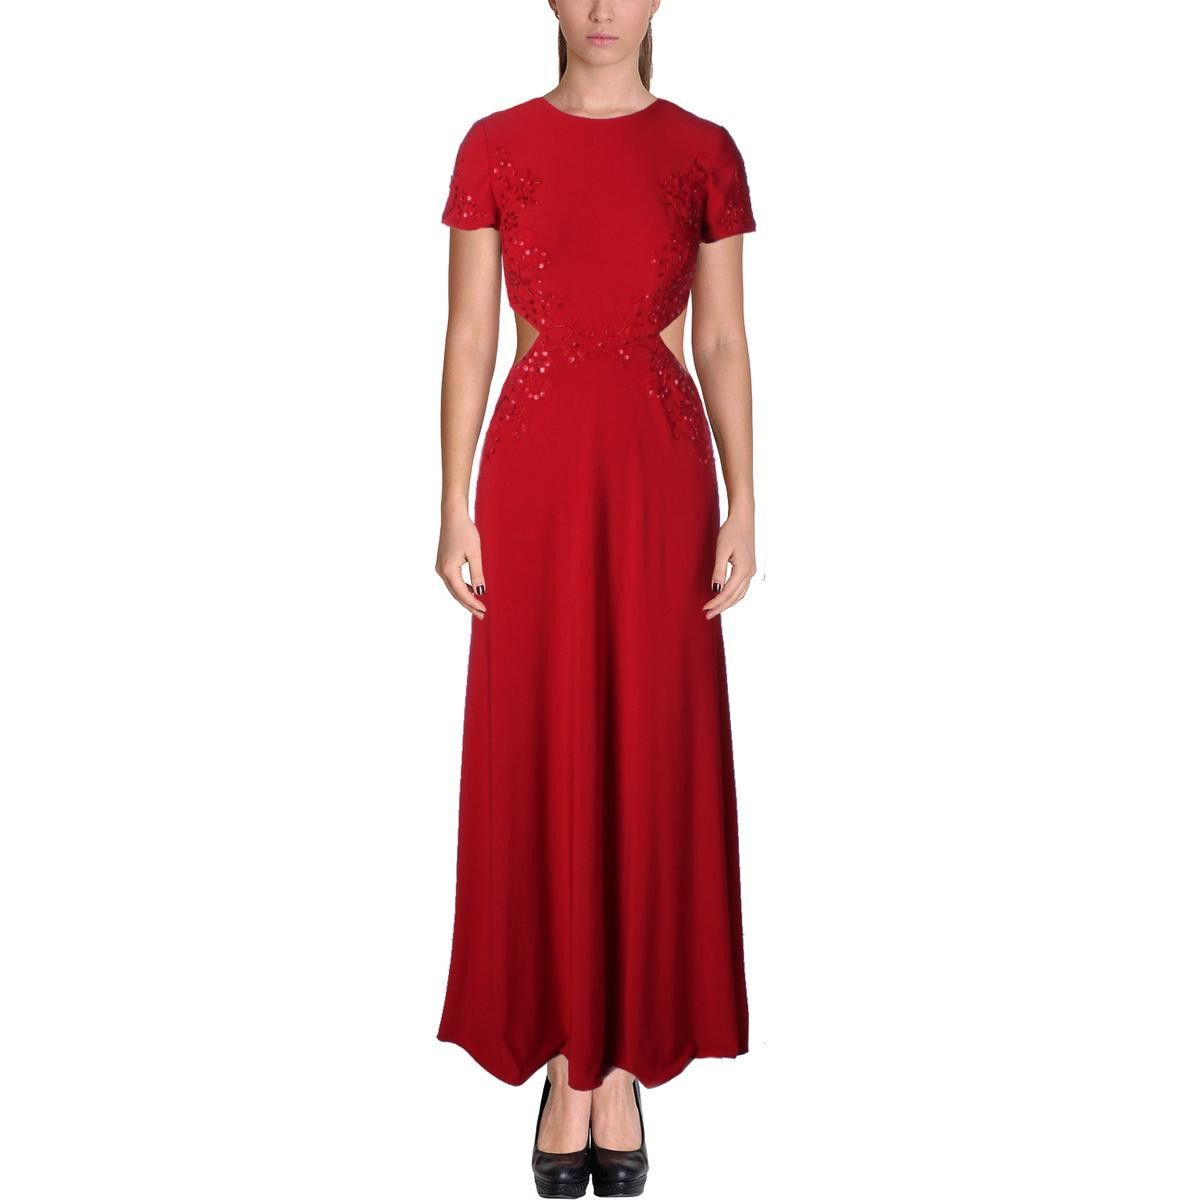 Avery g womens embelished cutout evening dress products